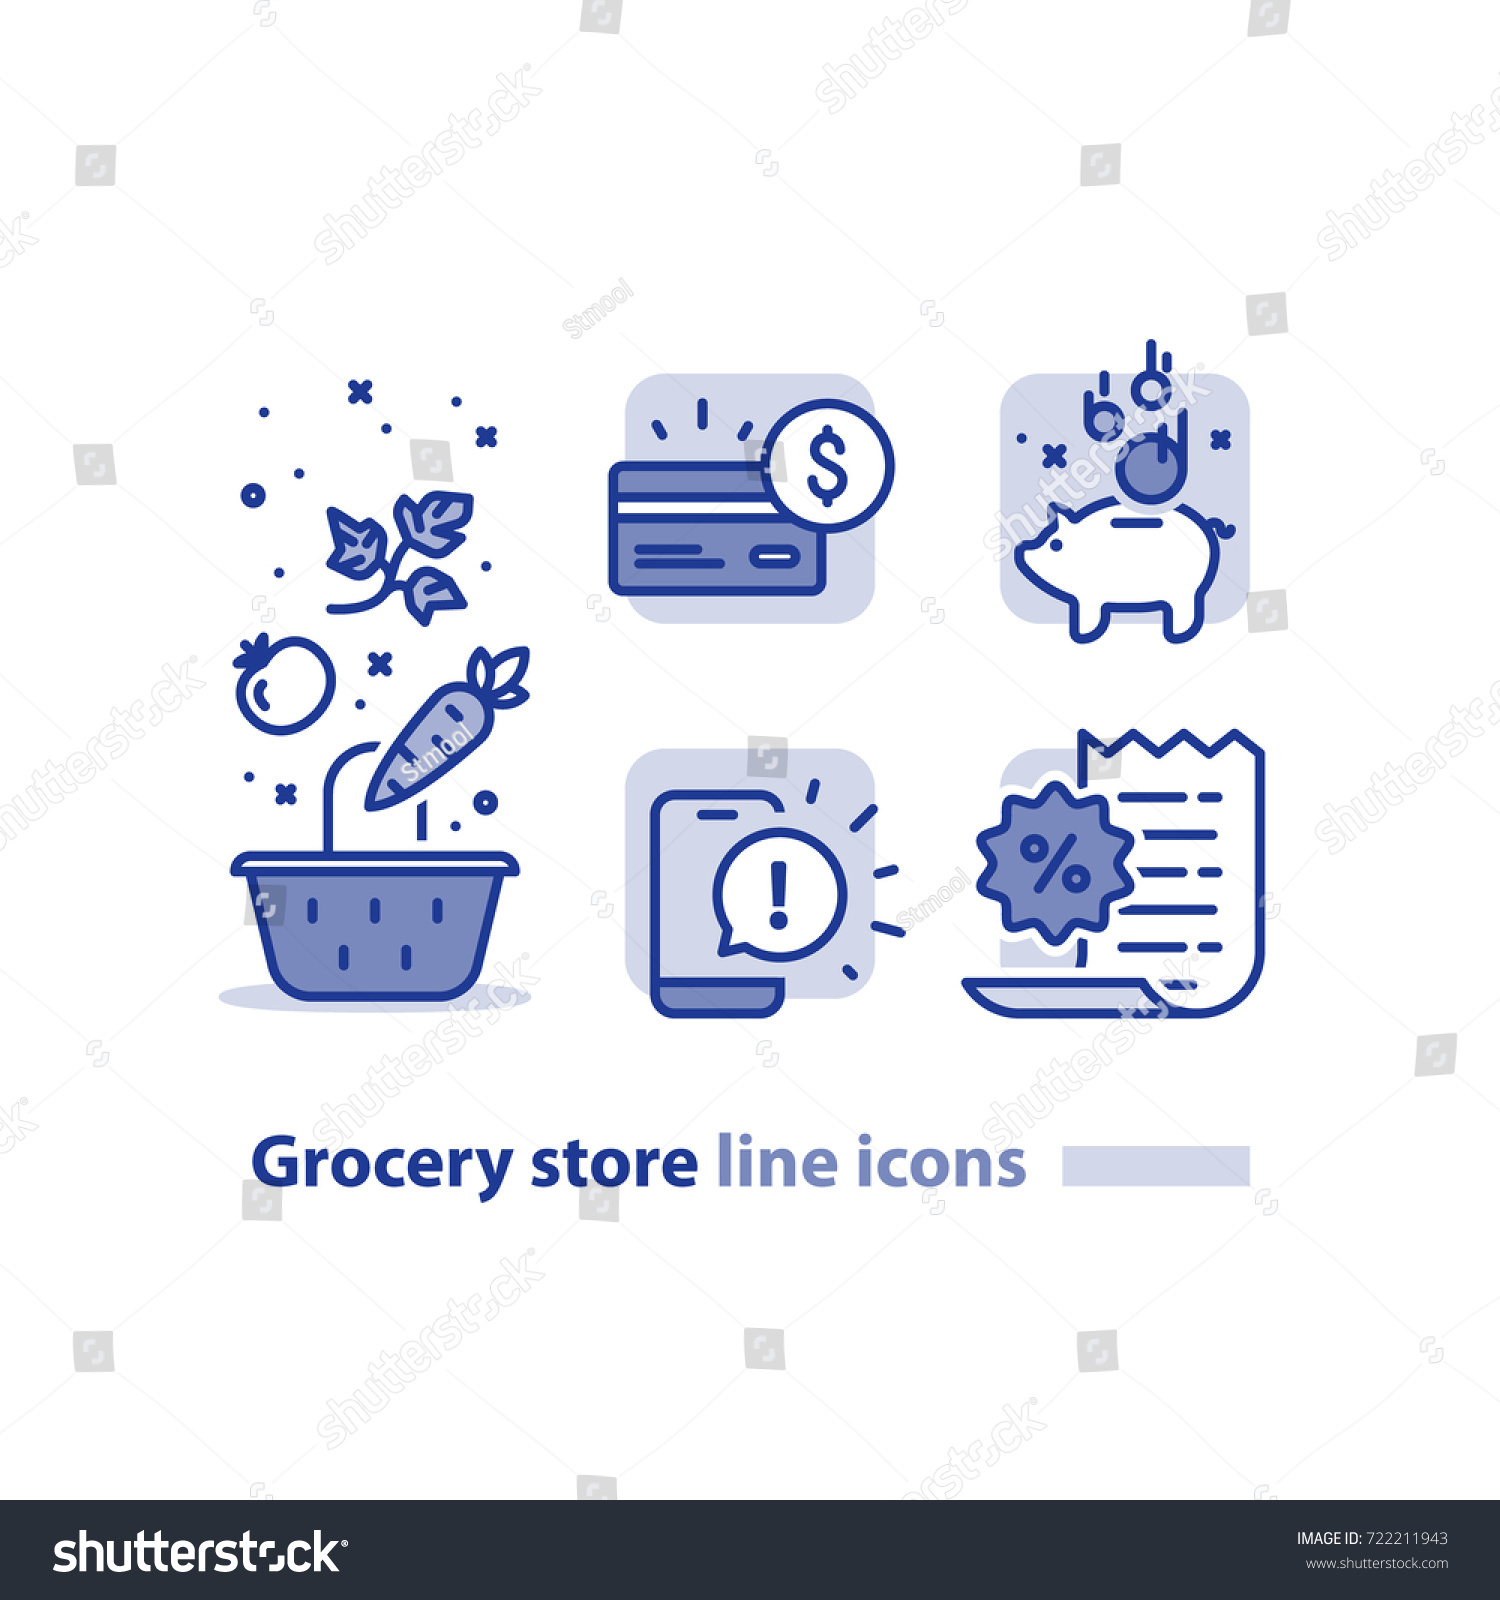 Grocery store coupons on phone